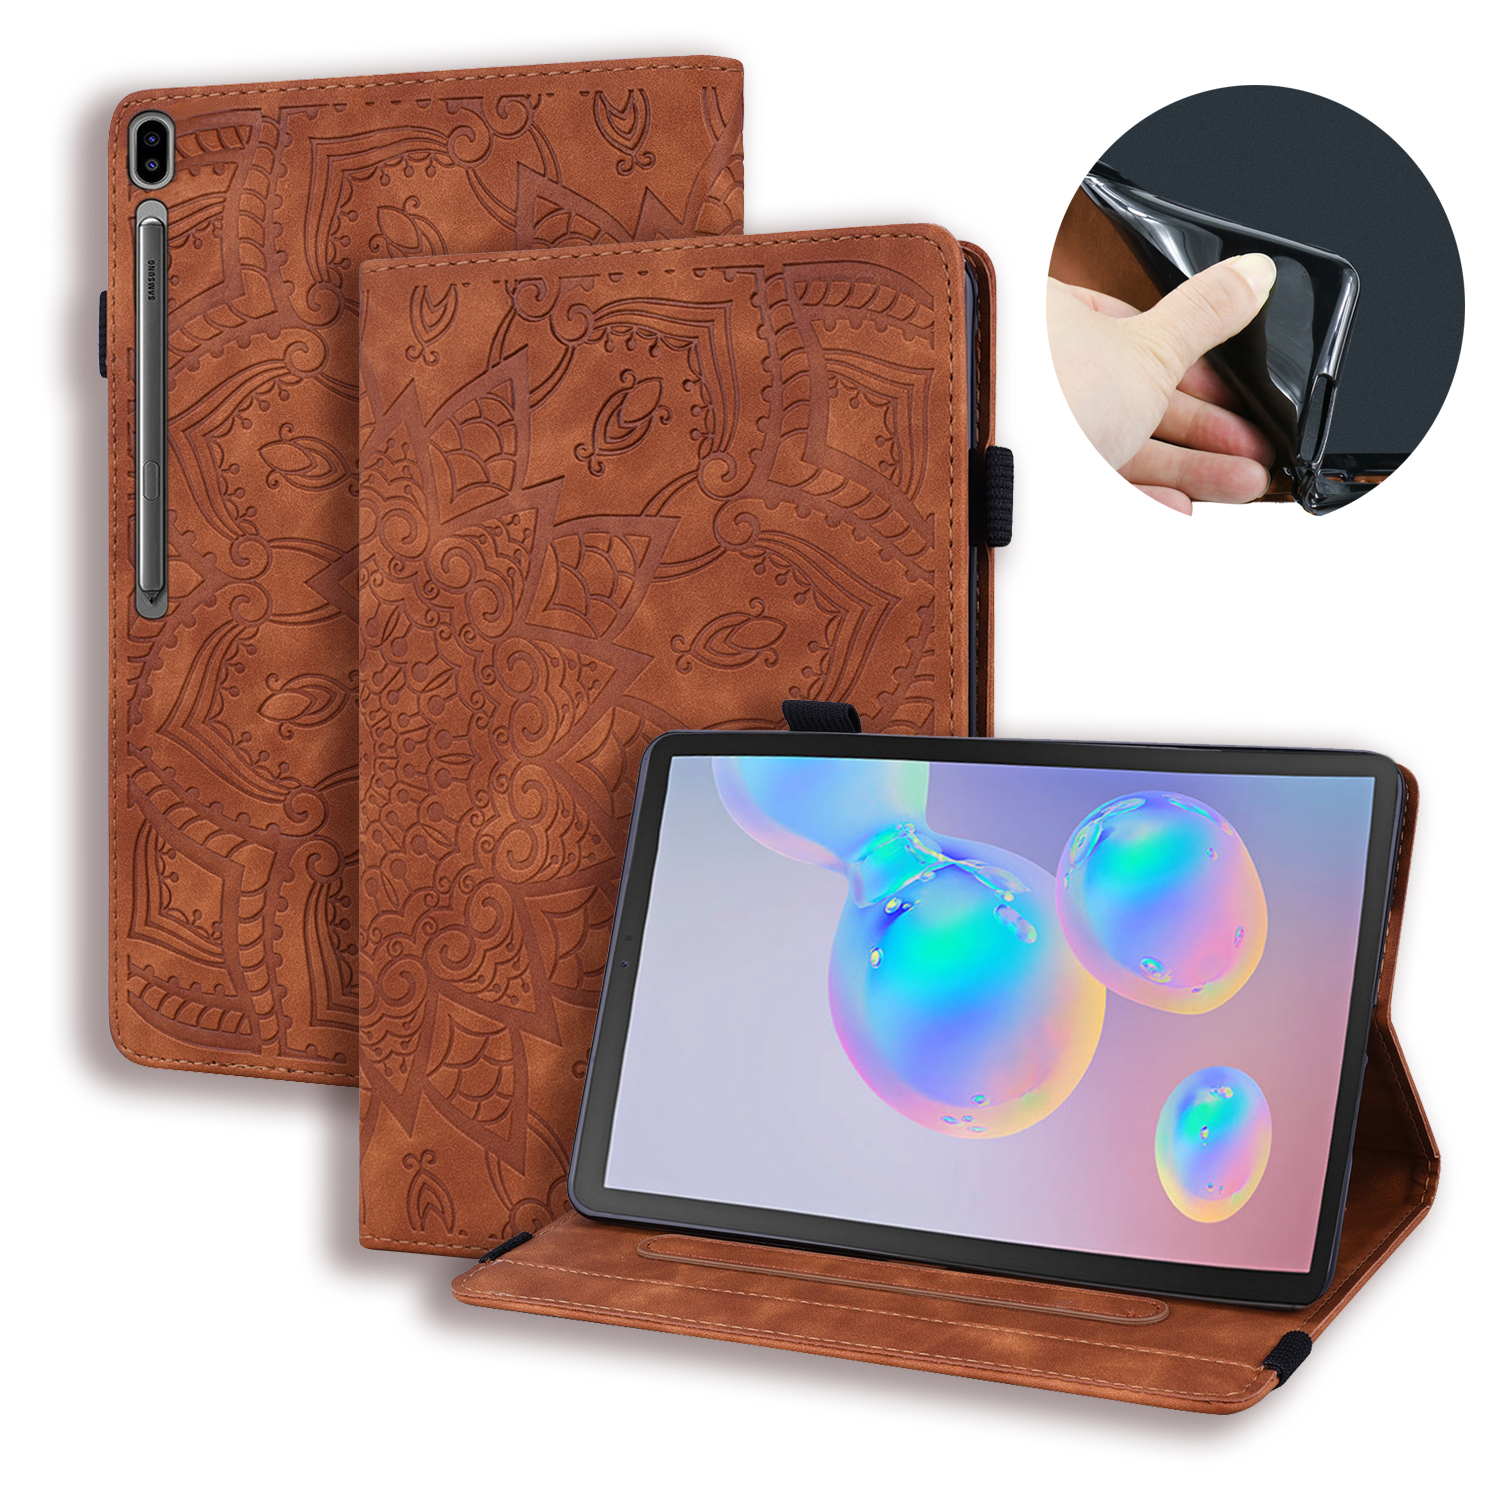 3D Flower Embossed Case For Samsung Galaxy Tab S6 10.5 SM-T860 SM-T865 T860 T865 Tablet Protective Cover For Galaxy Tab S6 Case